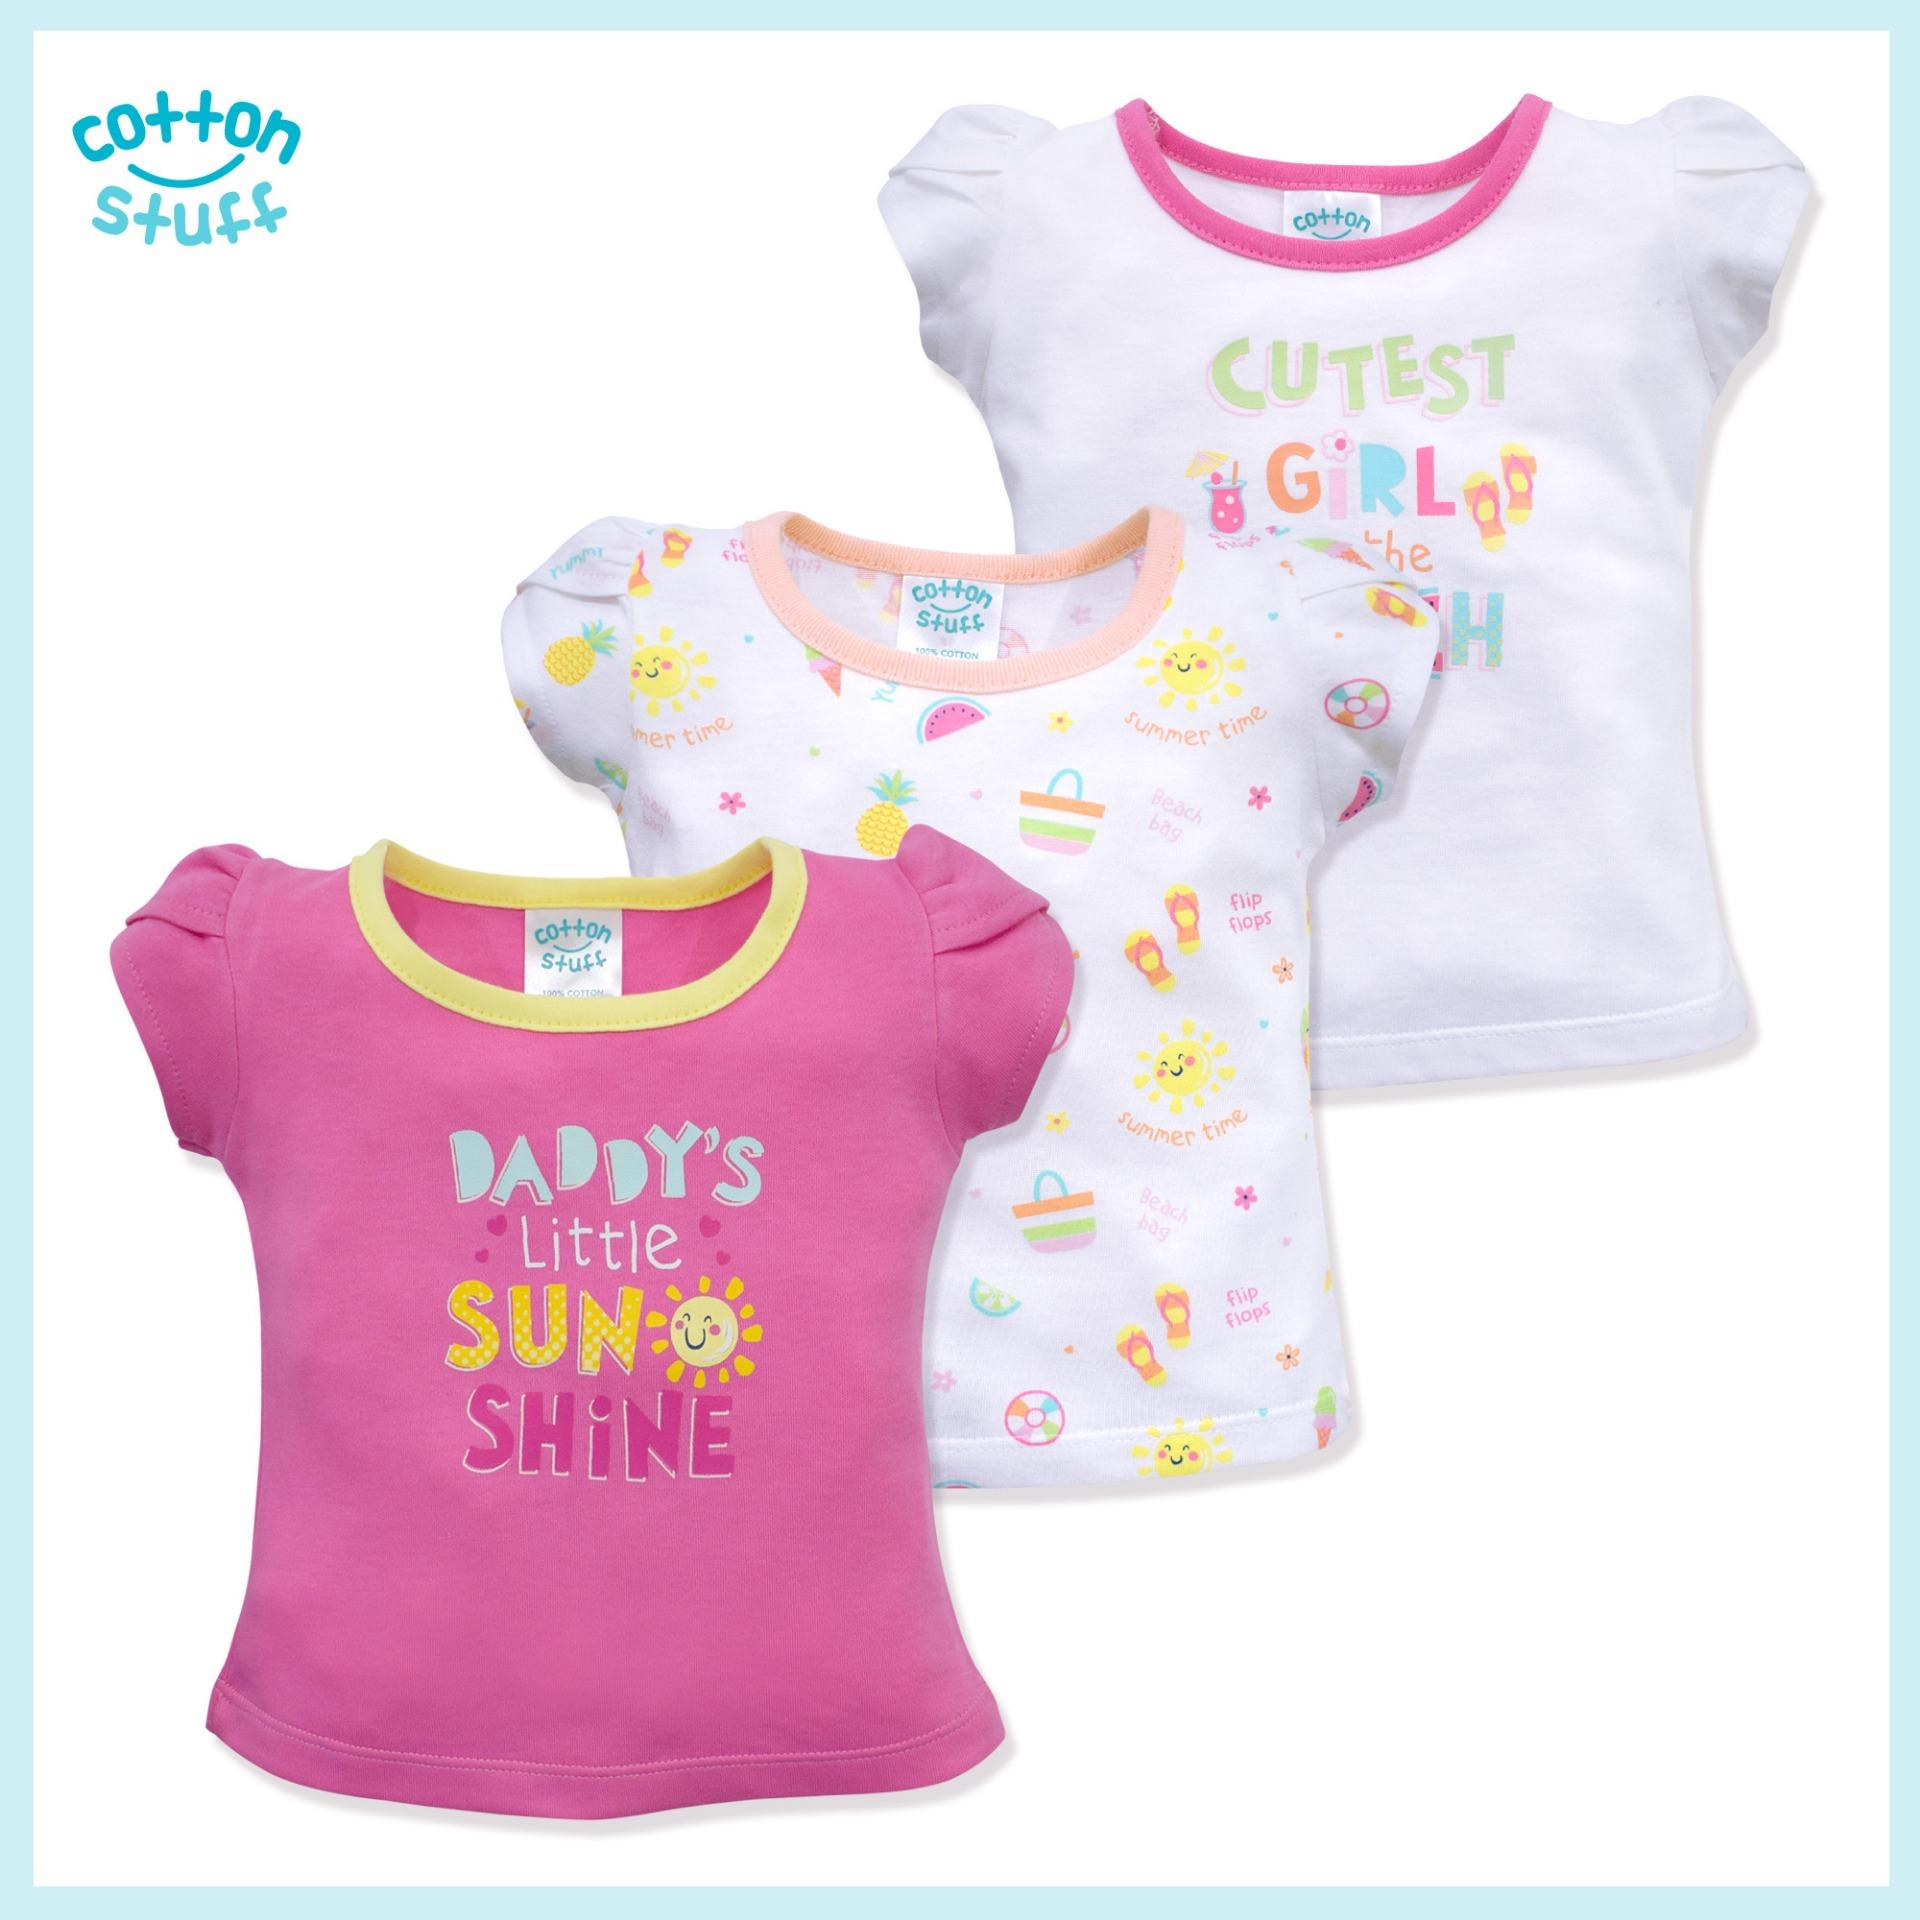 Cotton Stuff - 3-Piece Short Sleeve Fitted Blouse (little Sunshine - Girl) By Cotton Stuff.